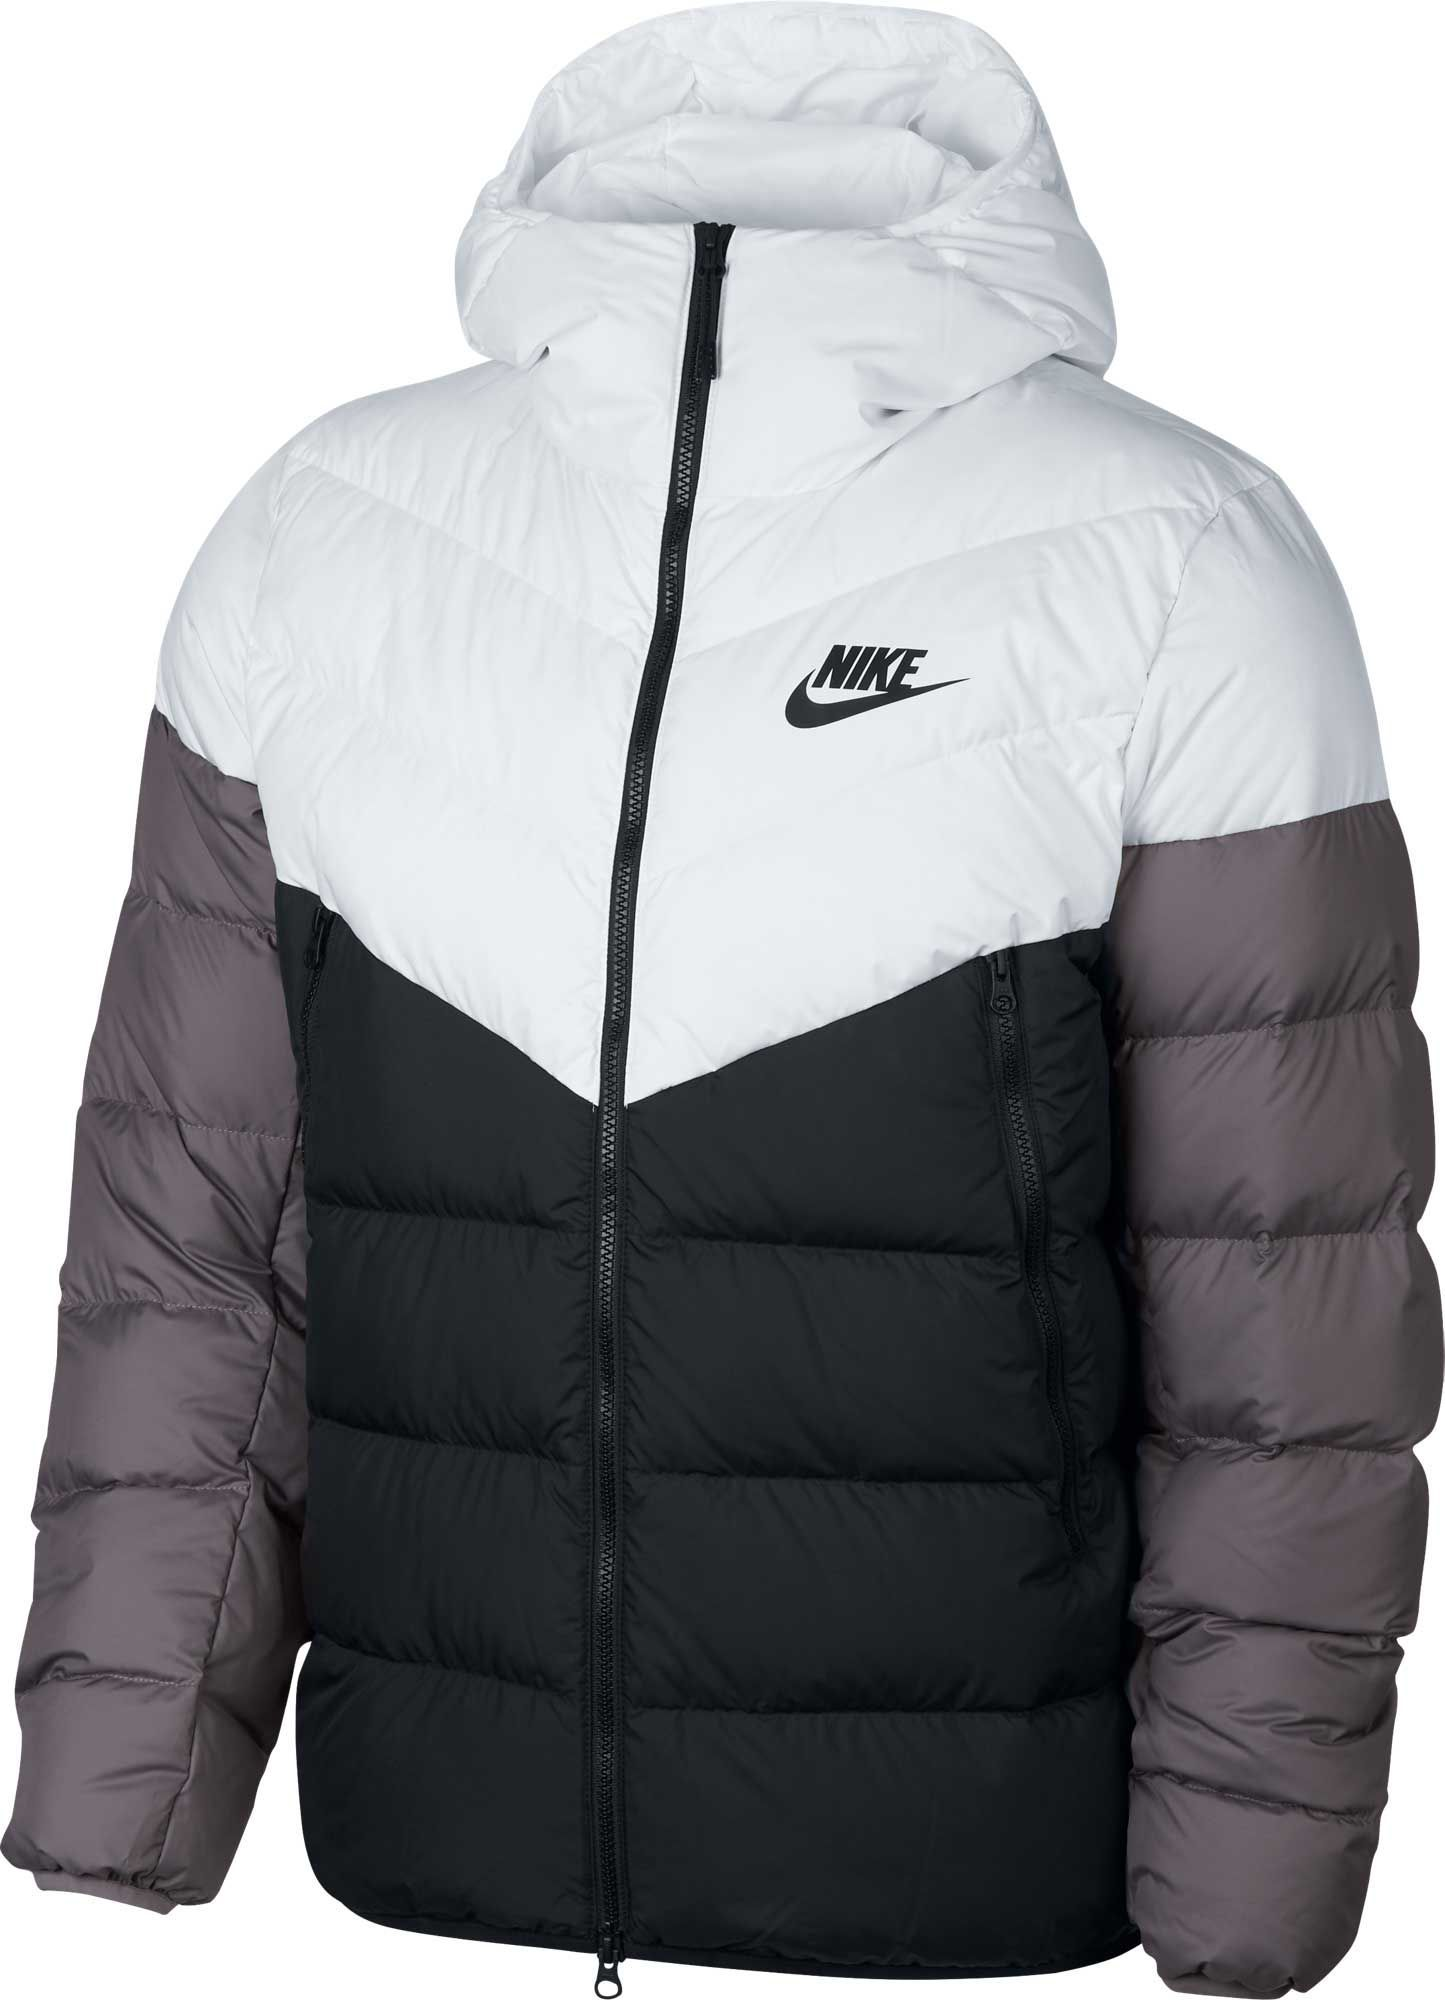 9699e4572330 Nike Men s Sportswear Windrunner Down Jacket in 2019